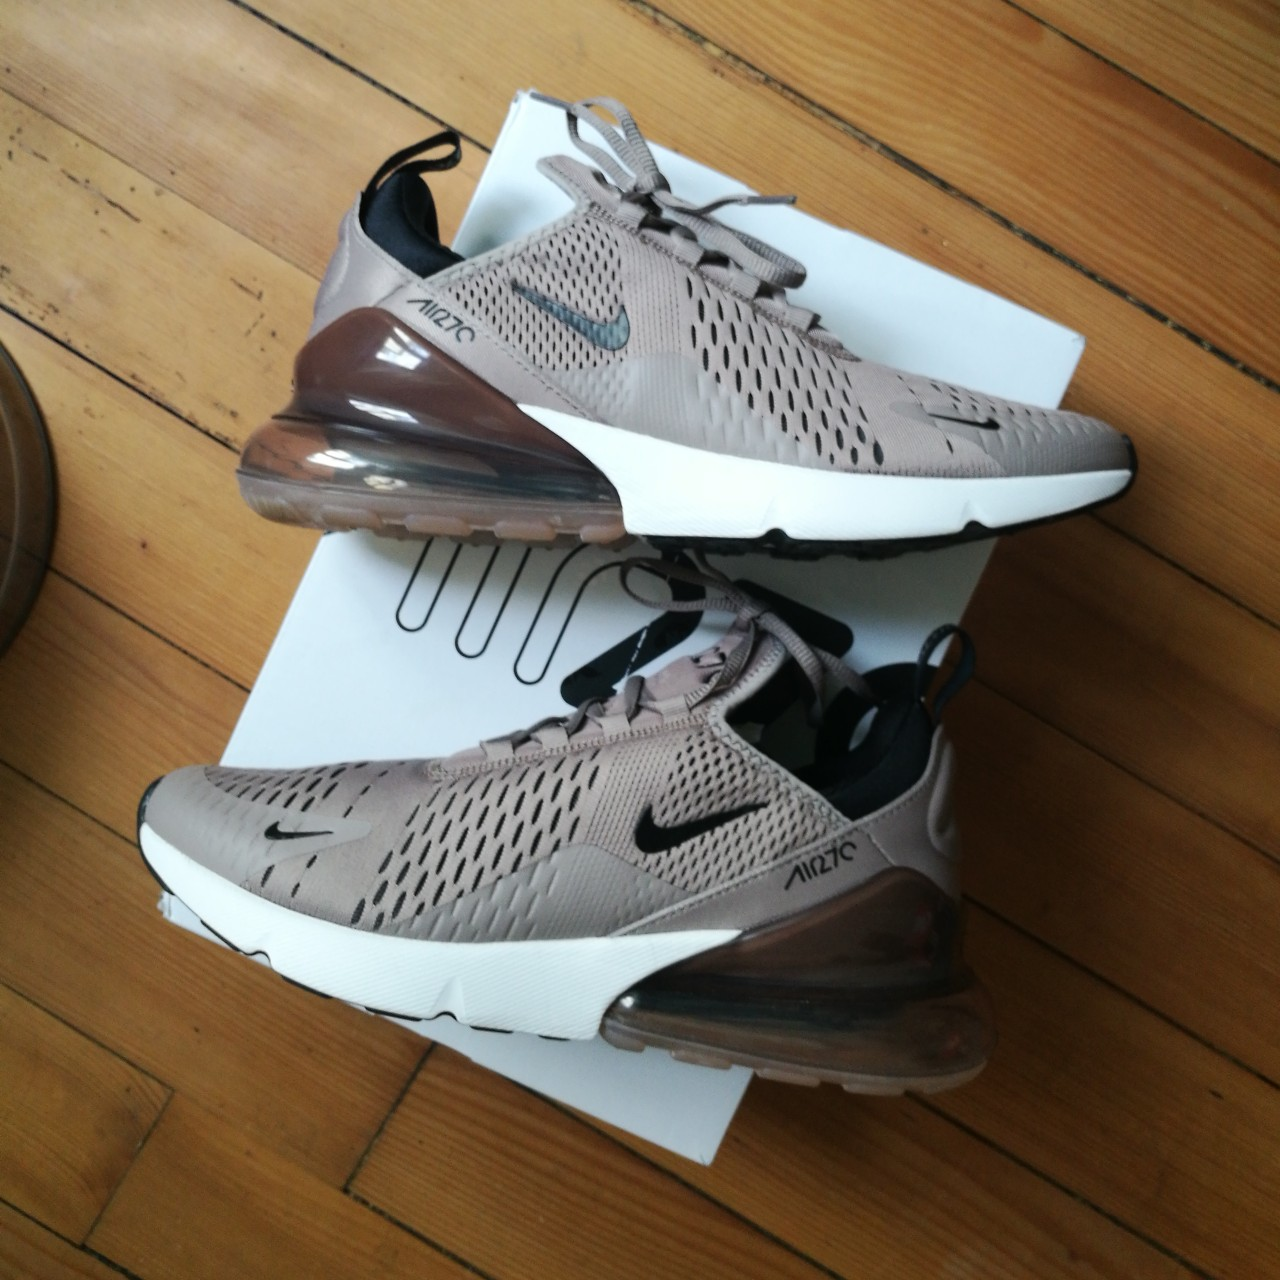 premium selection c6491 1e7ed Air Max 270 Footlocker Exclusive VNDS used just for... - Depop